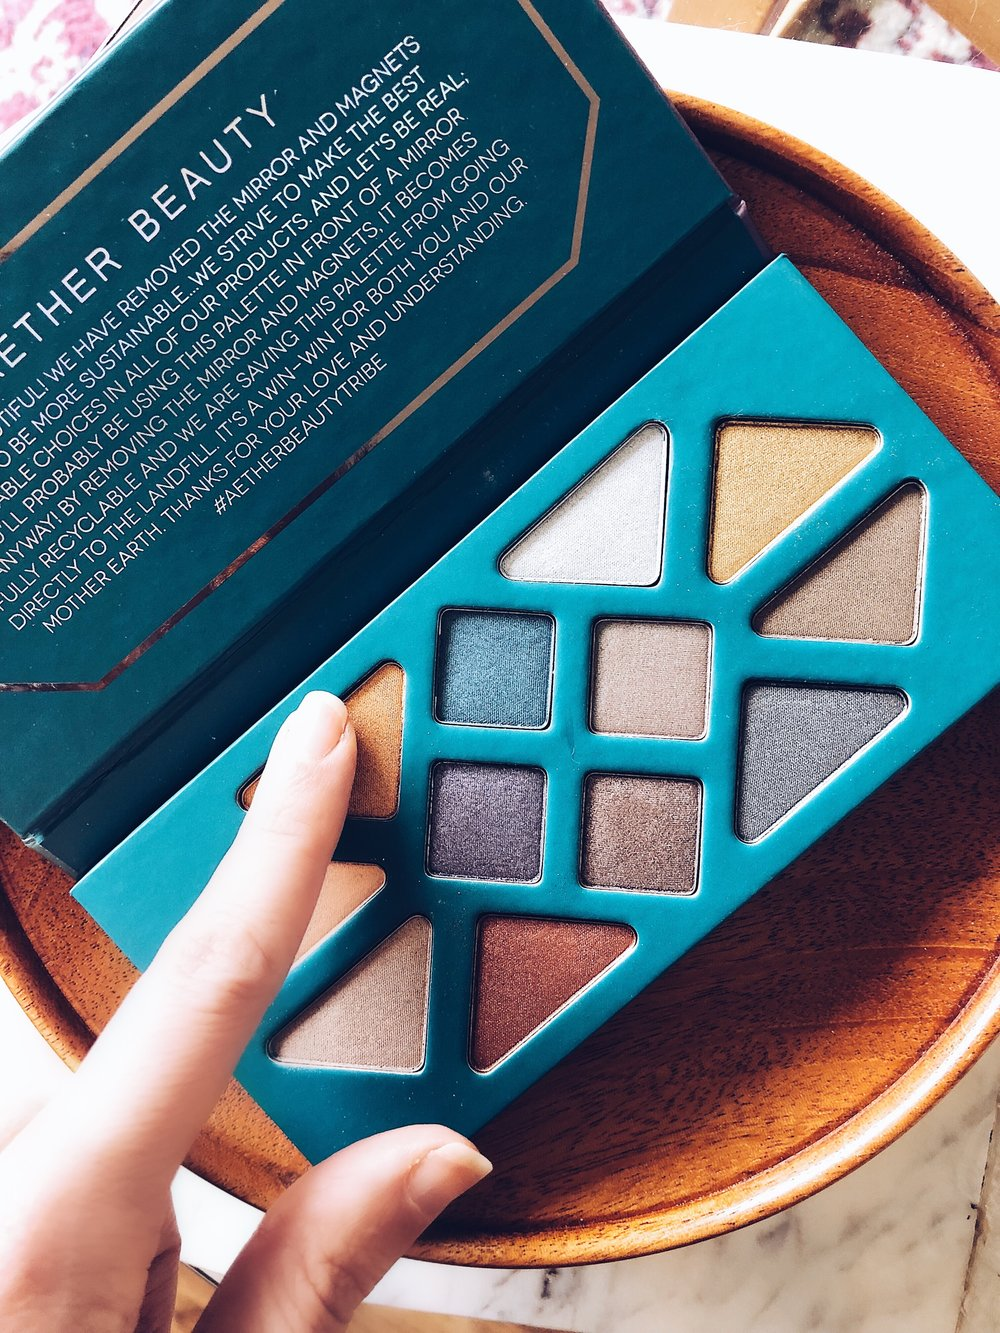 Aether Beauty Crystal Grid Gemstone Palette- $58 - Here's the quick SCORECARD breakdown. Each question is rated on a scale of 1 to 5, 5 being the best:1. How do the ingredients look (EWG.org ratings)?- 4: really solid!2. How is color pay off?- 5: I was blown away. No joke, this shadow performs!3. How is application?- 5: It glides on. A little does go a long way, and fallout was minimal.4. Is it non-irritating?- 5: Yes! No issues and I wear contact lenses.5. How about creasing?- 5: I prime and set prior to applying. Zero creasing issues.6. Does it last all day?- 5: Again, a prime and set helped. No reapplication was needed!7. How conscious is the brand? Cruelty free, sustainable, etc.- 5: If I could give it a '6' I would.FINAL SCORE:34/35